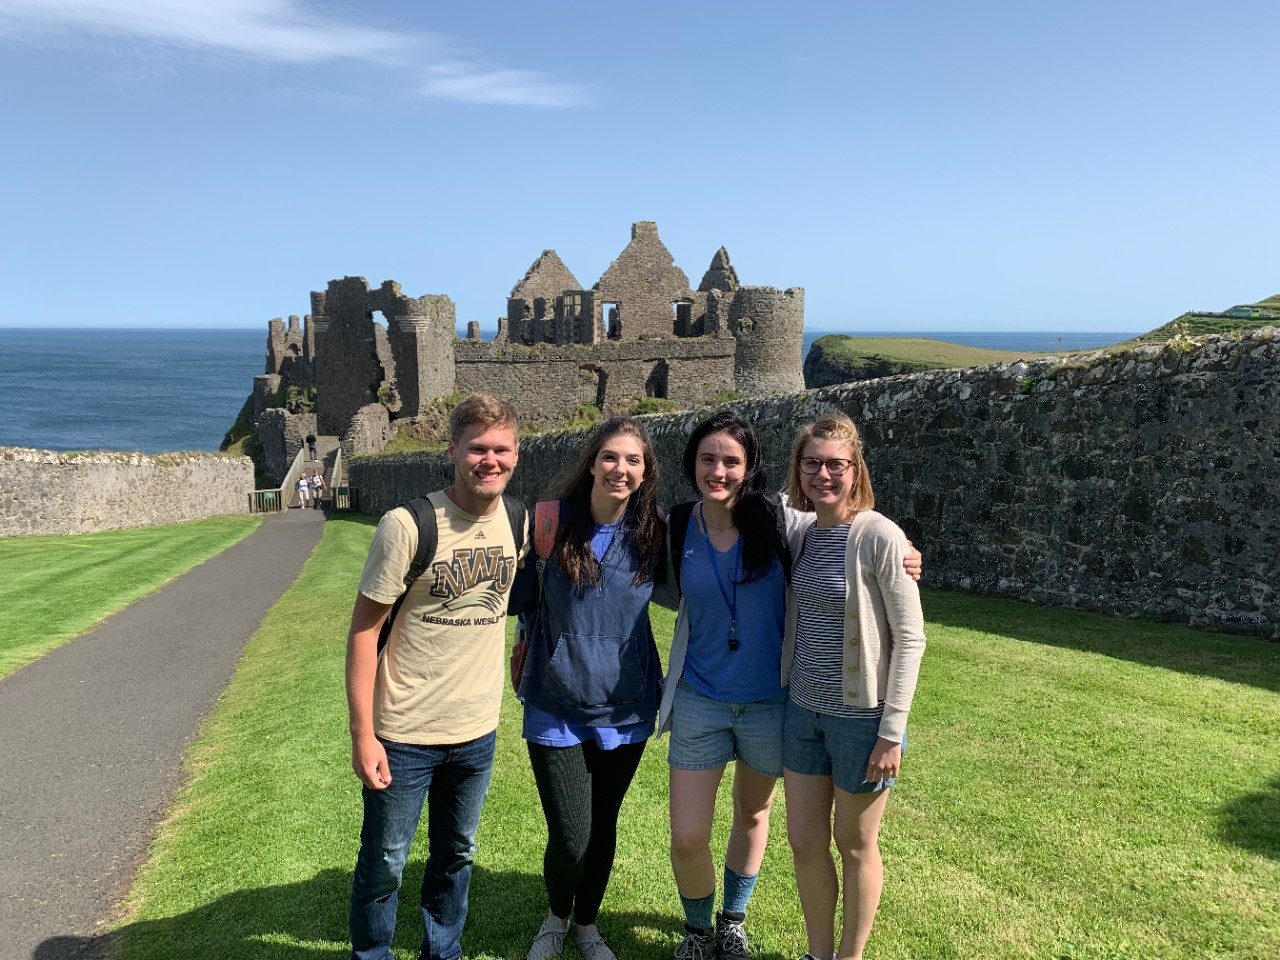 Chloe Elleman, far right, and other students in the Fulbright UK Summer Institute study program at Dunluce Castle in Northern Ireland.